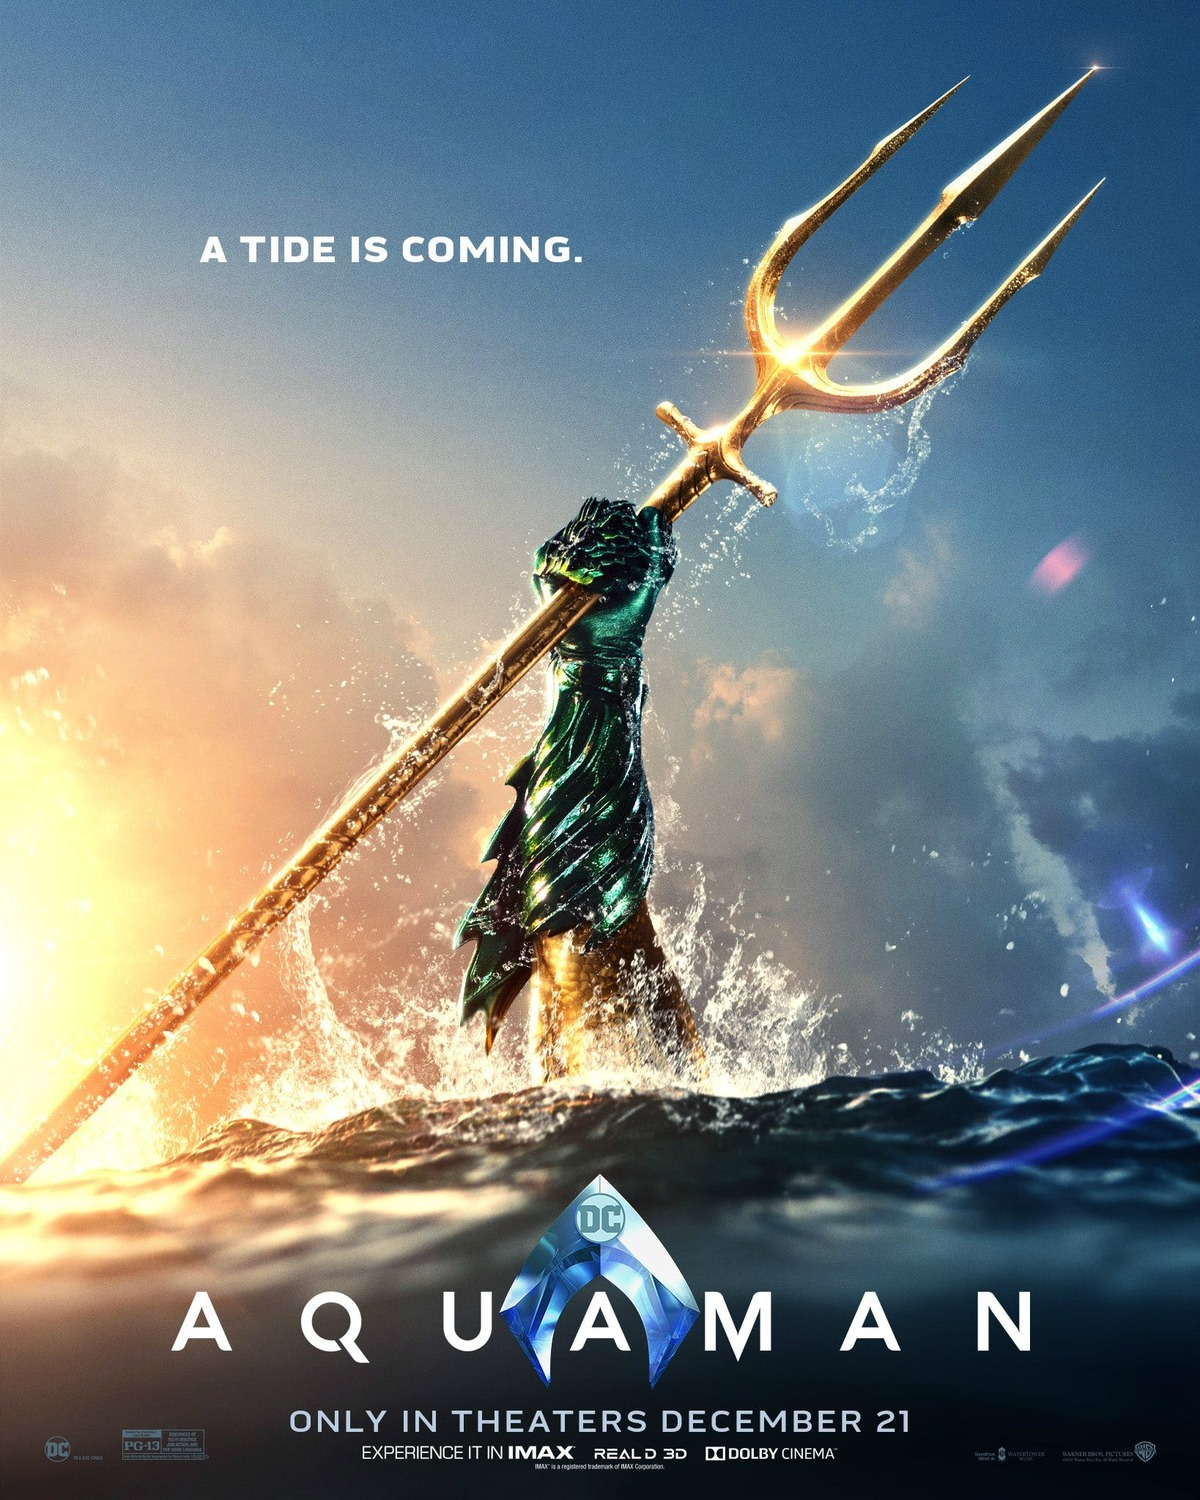 Aquaman avance exclusivo.